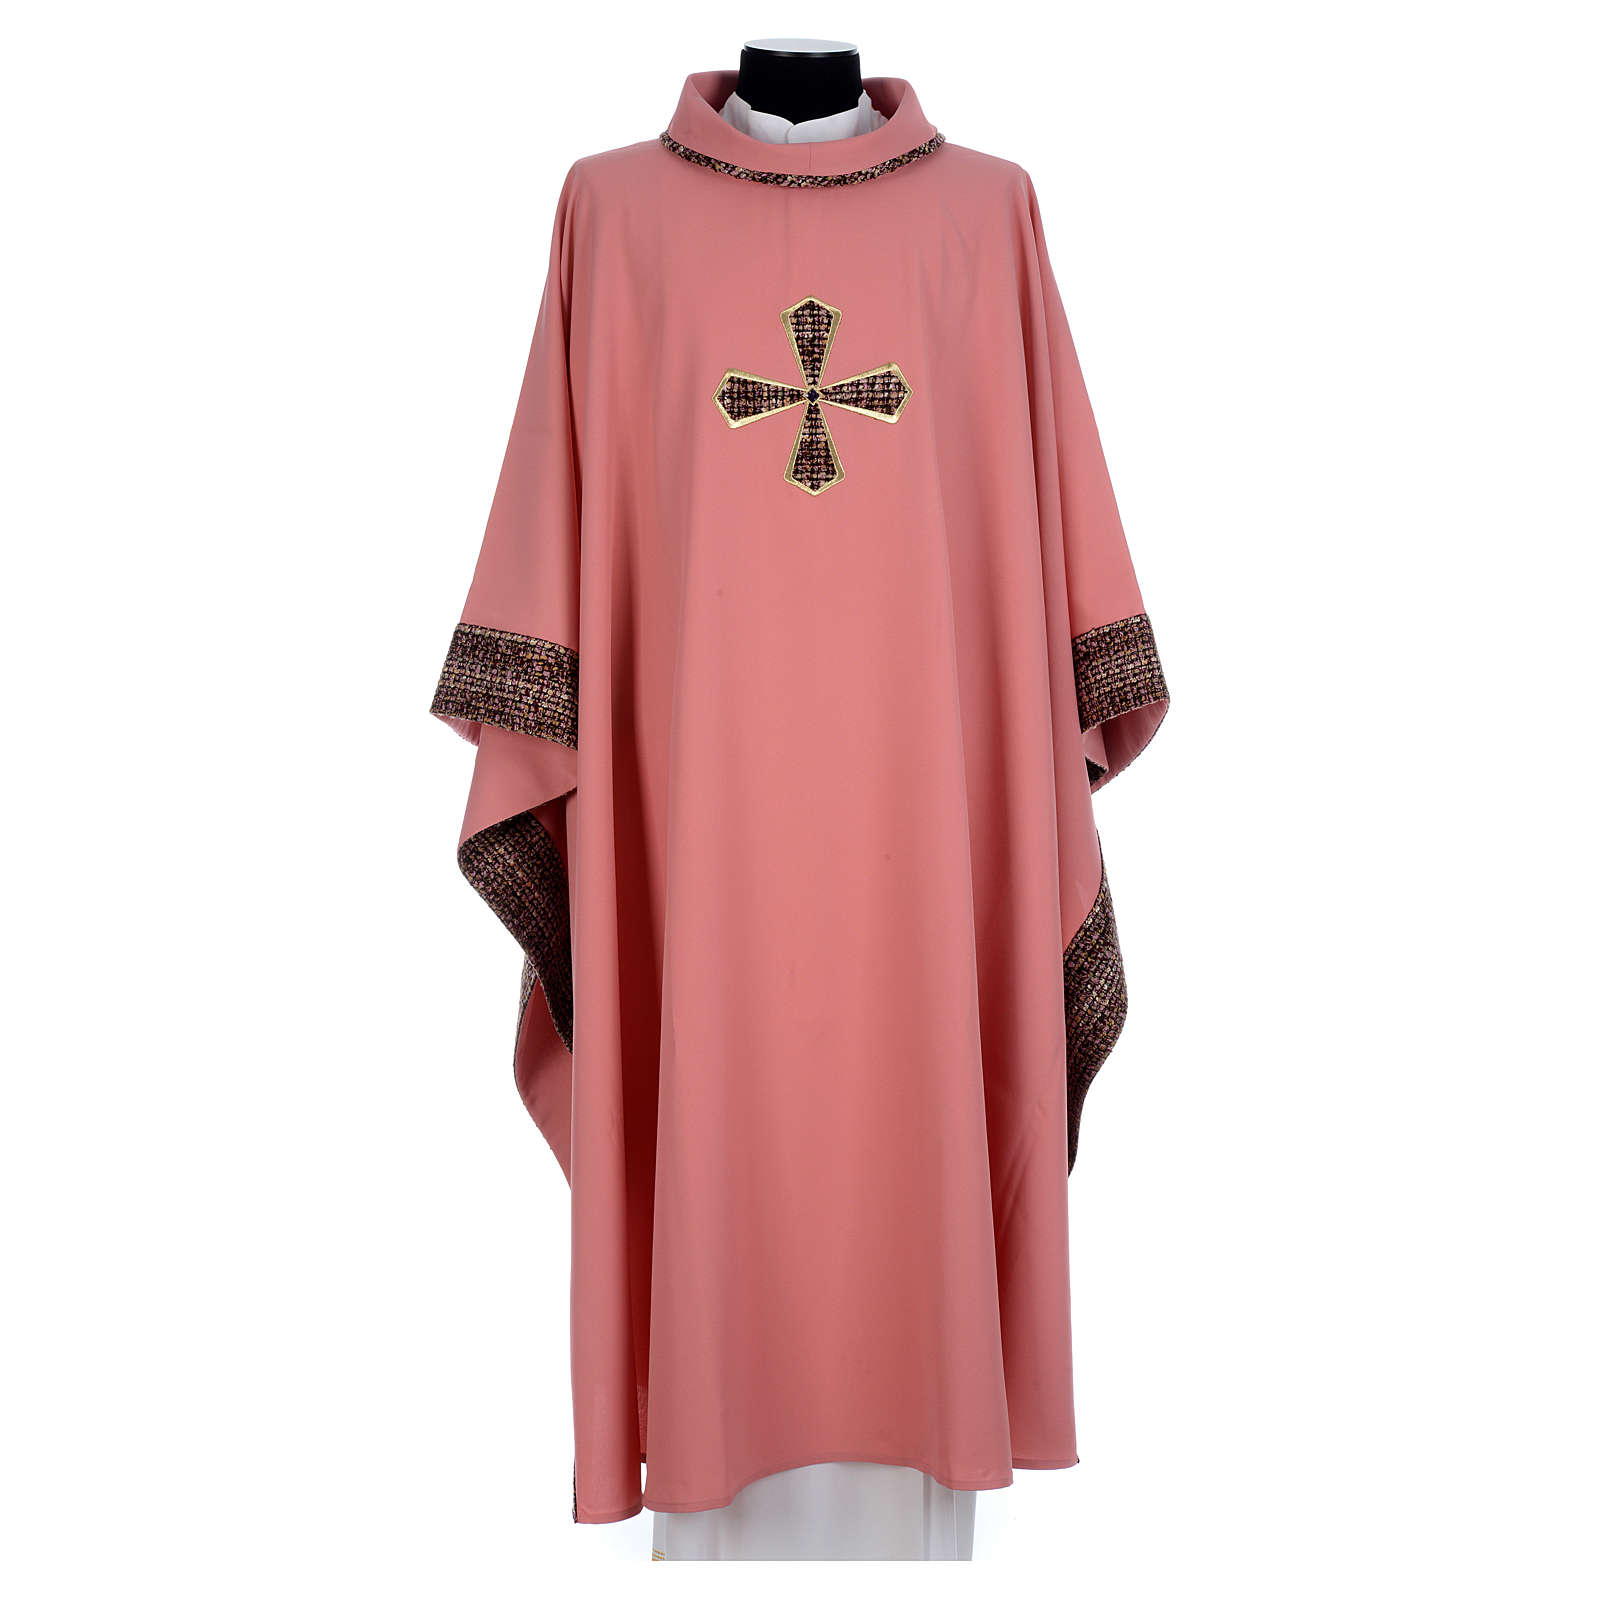 Chasuble rose 100% polyester inserts tissu croix brodée 4